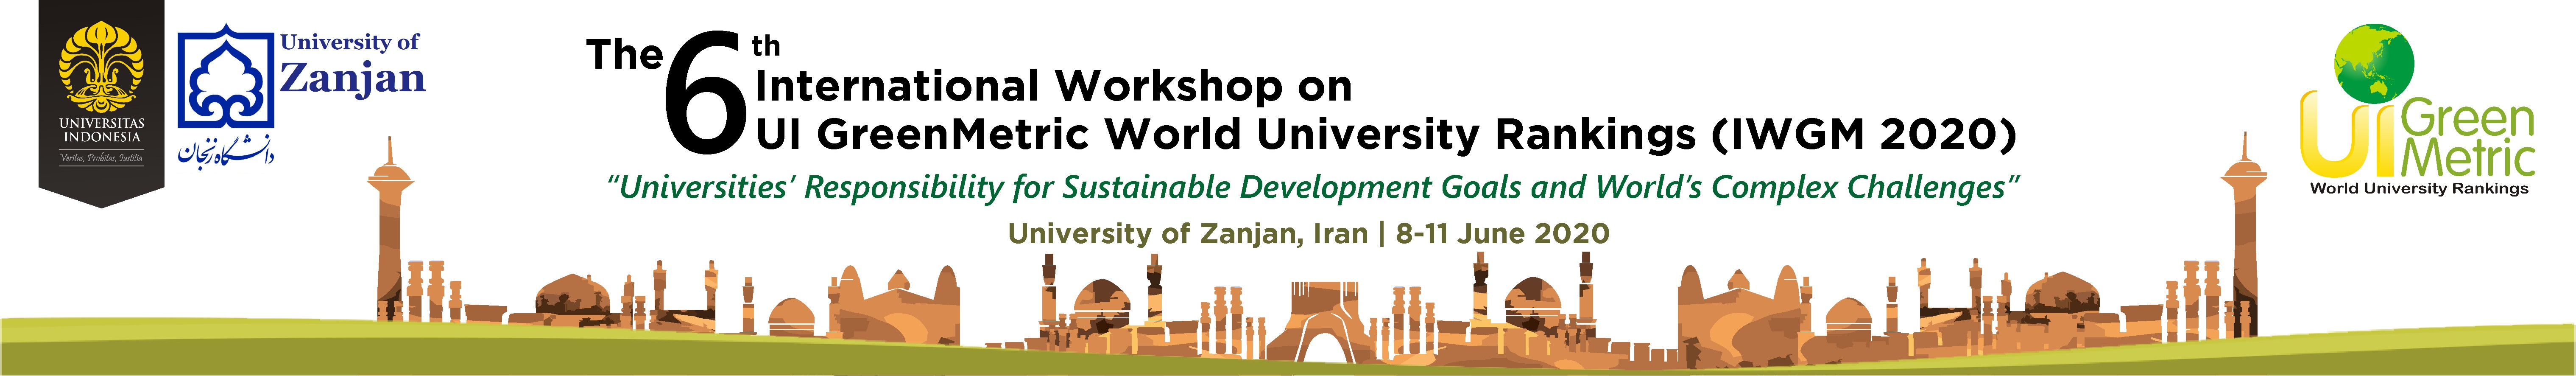 International Workshop on UI GreenMetric